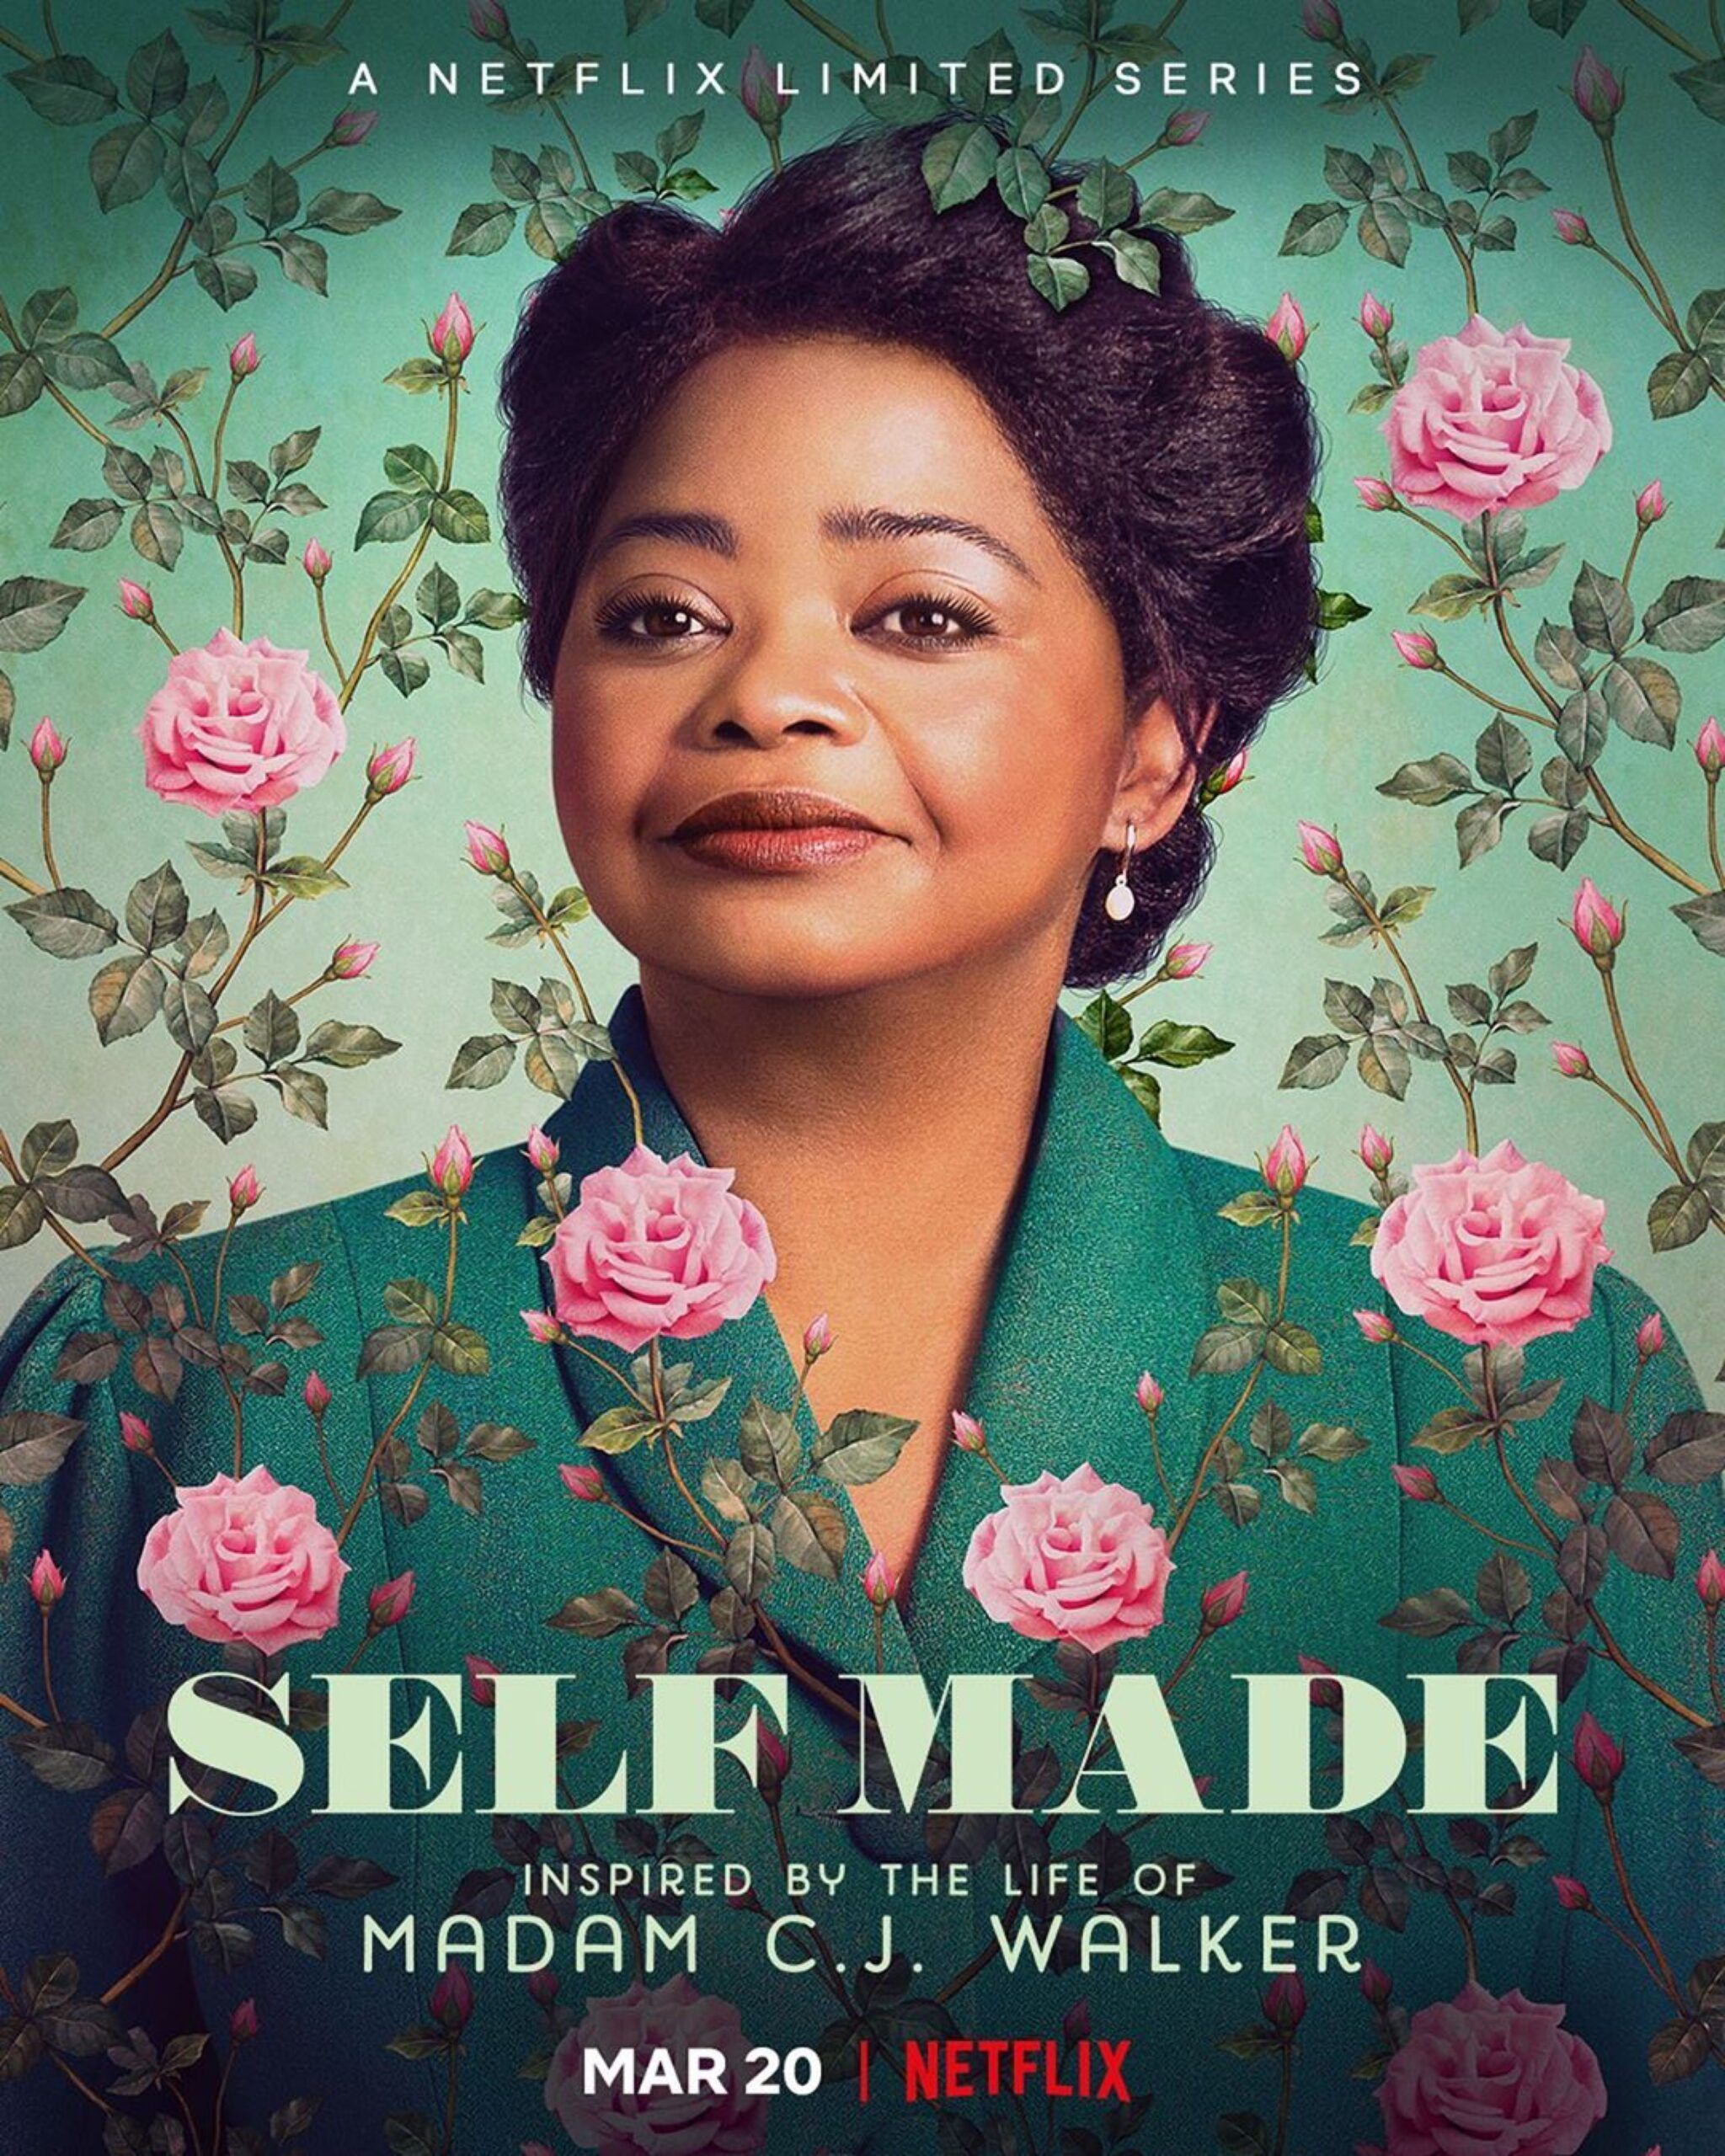 Watch Netflix's 'Self Made Inspired By The Life Of Madam